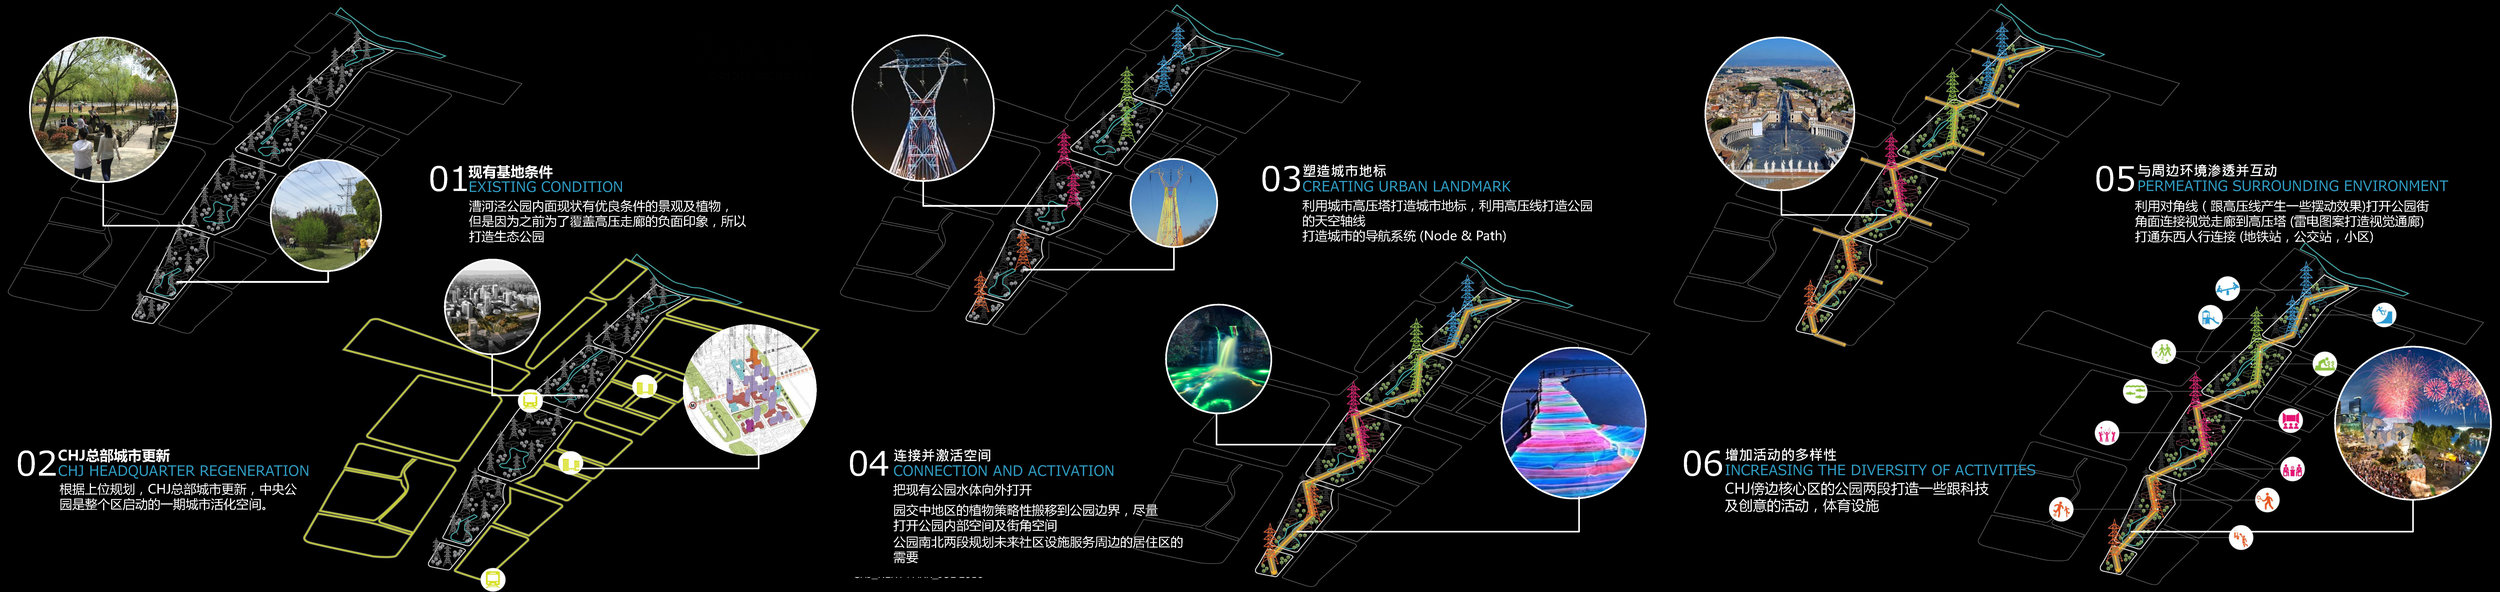 Functional Analysis 建筑功能分析